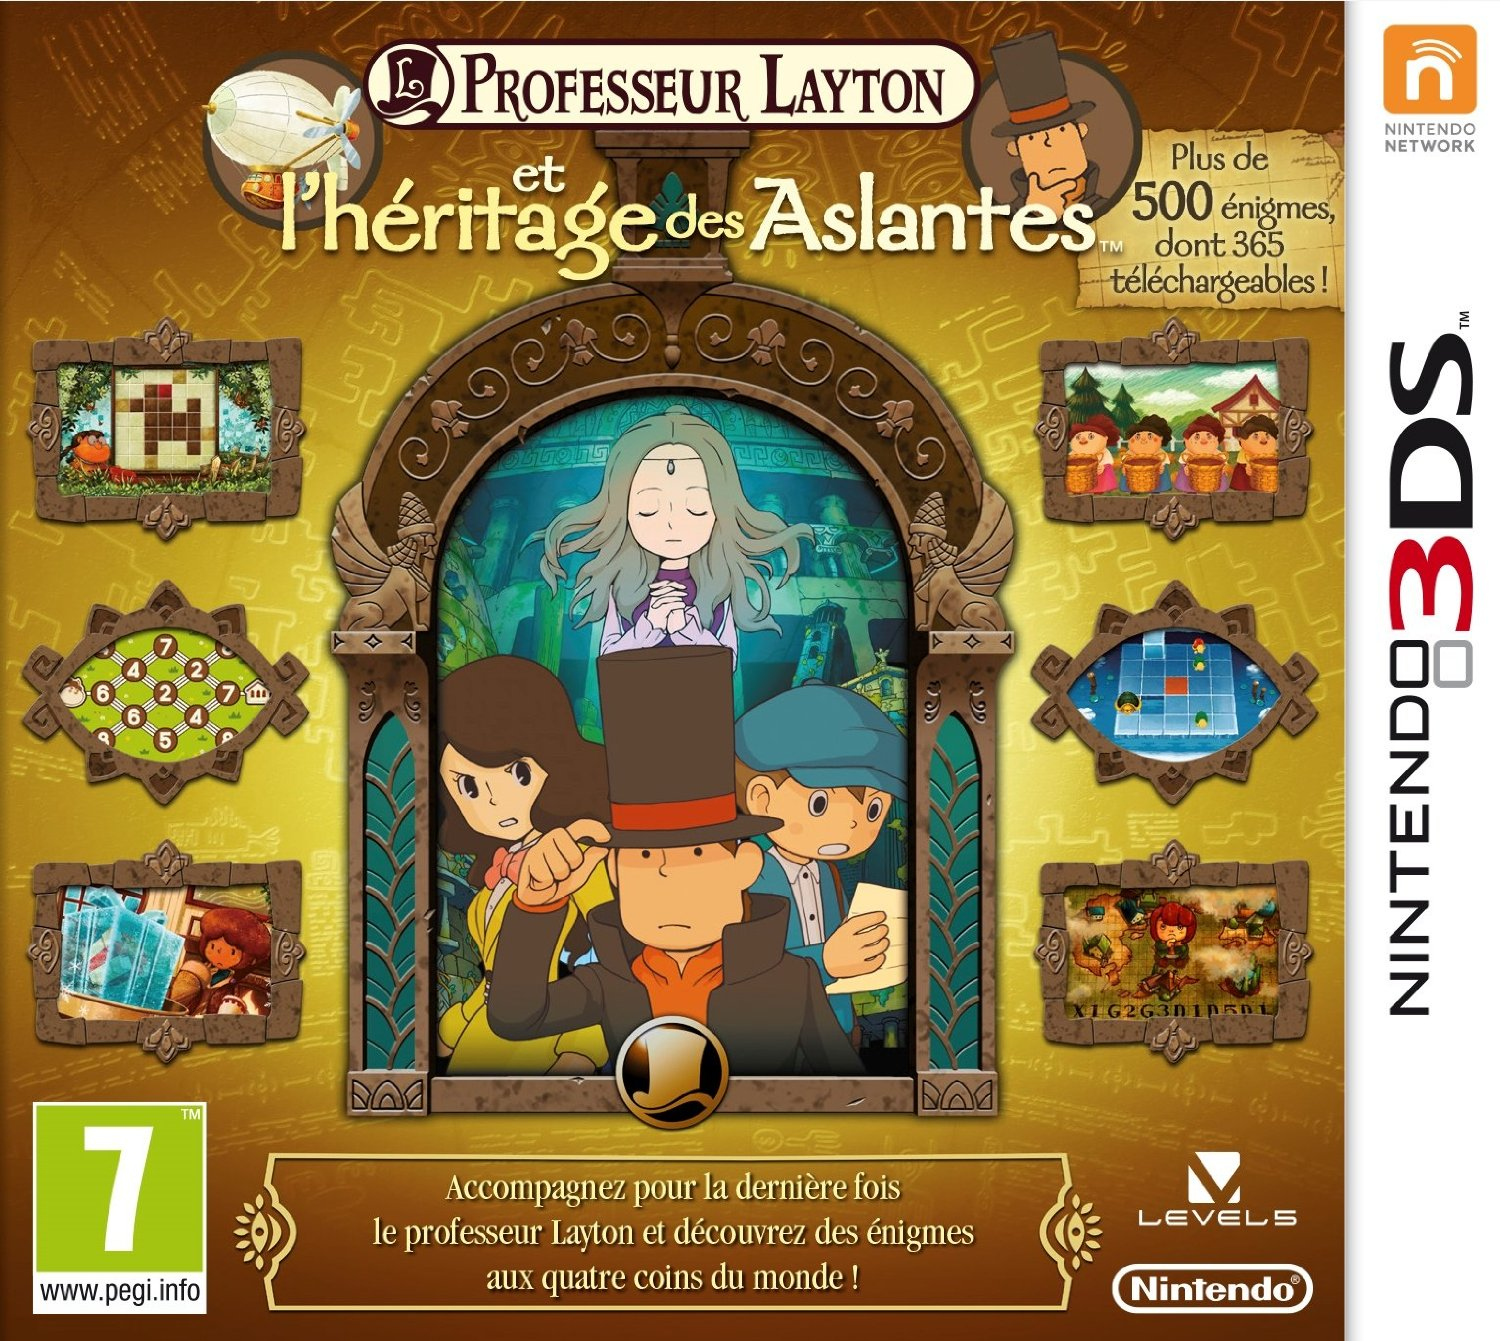 [ANNONCE] Layton termine sa carriere le 8/11